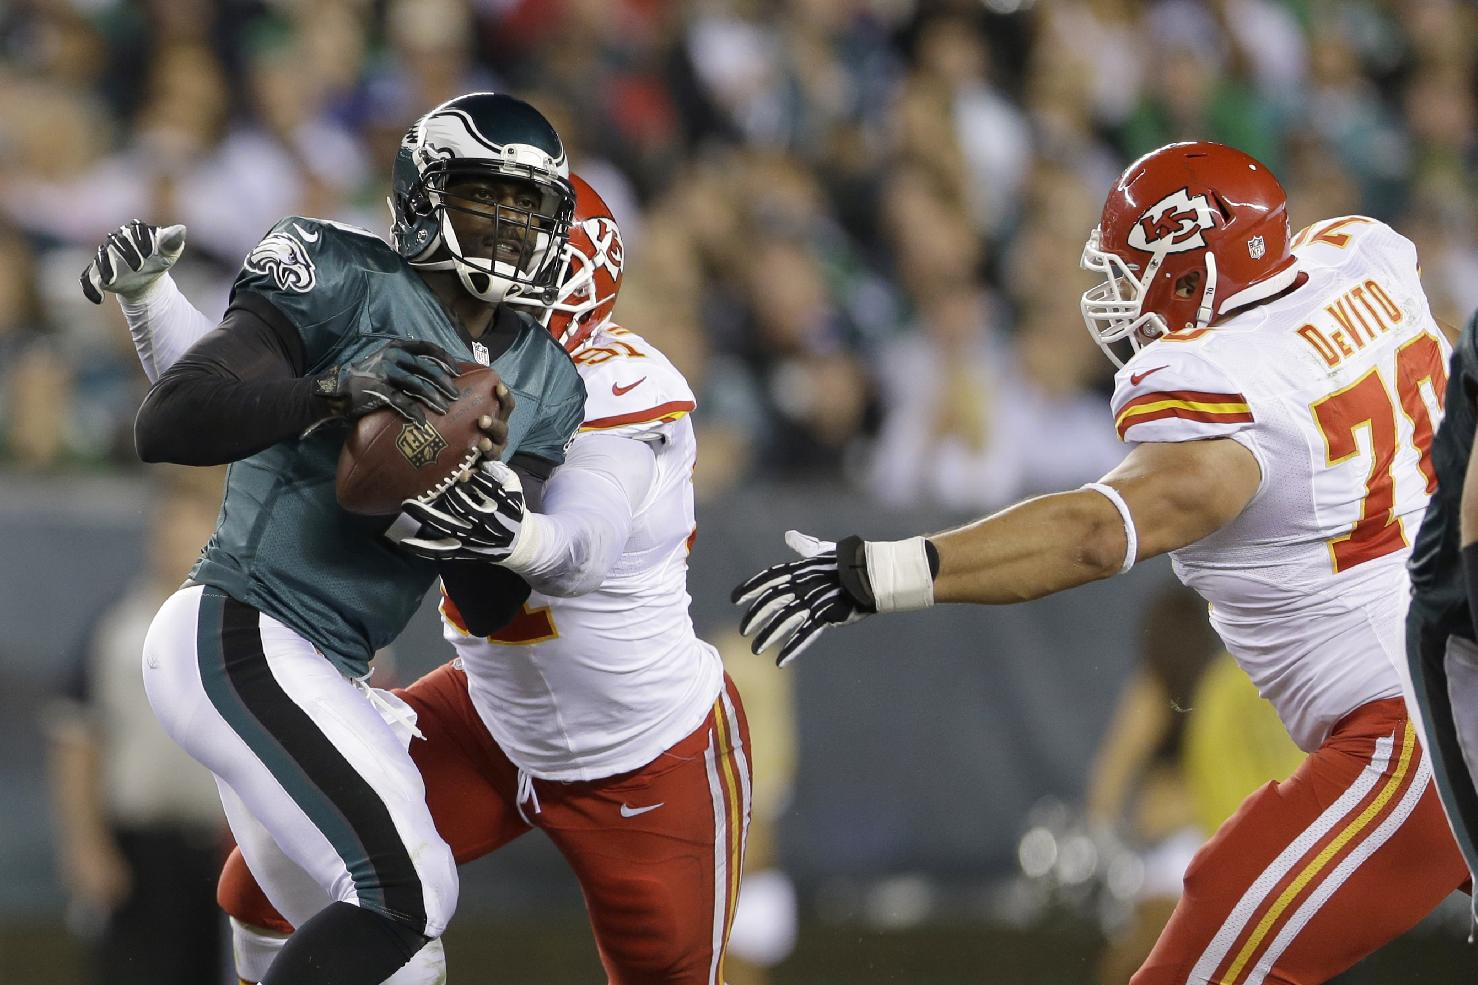 Philadelphia Eagles' Michael Vick, left, is cornered by Kansas City Chiefs' Tamba Hali and Mike DeVito during the first half of an NFL football game, Thursday, Sept. 19, 2013, in Philadelphia